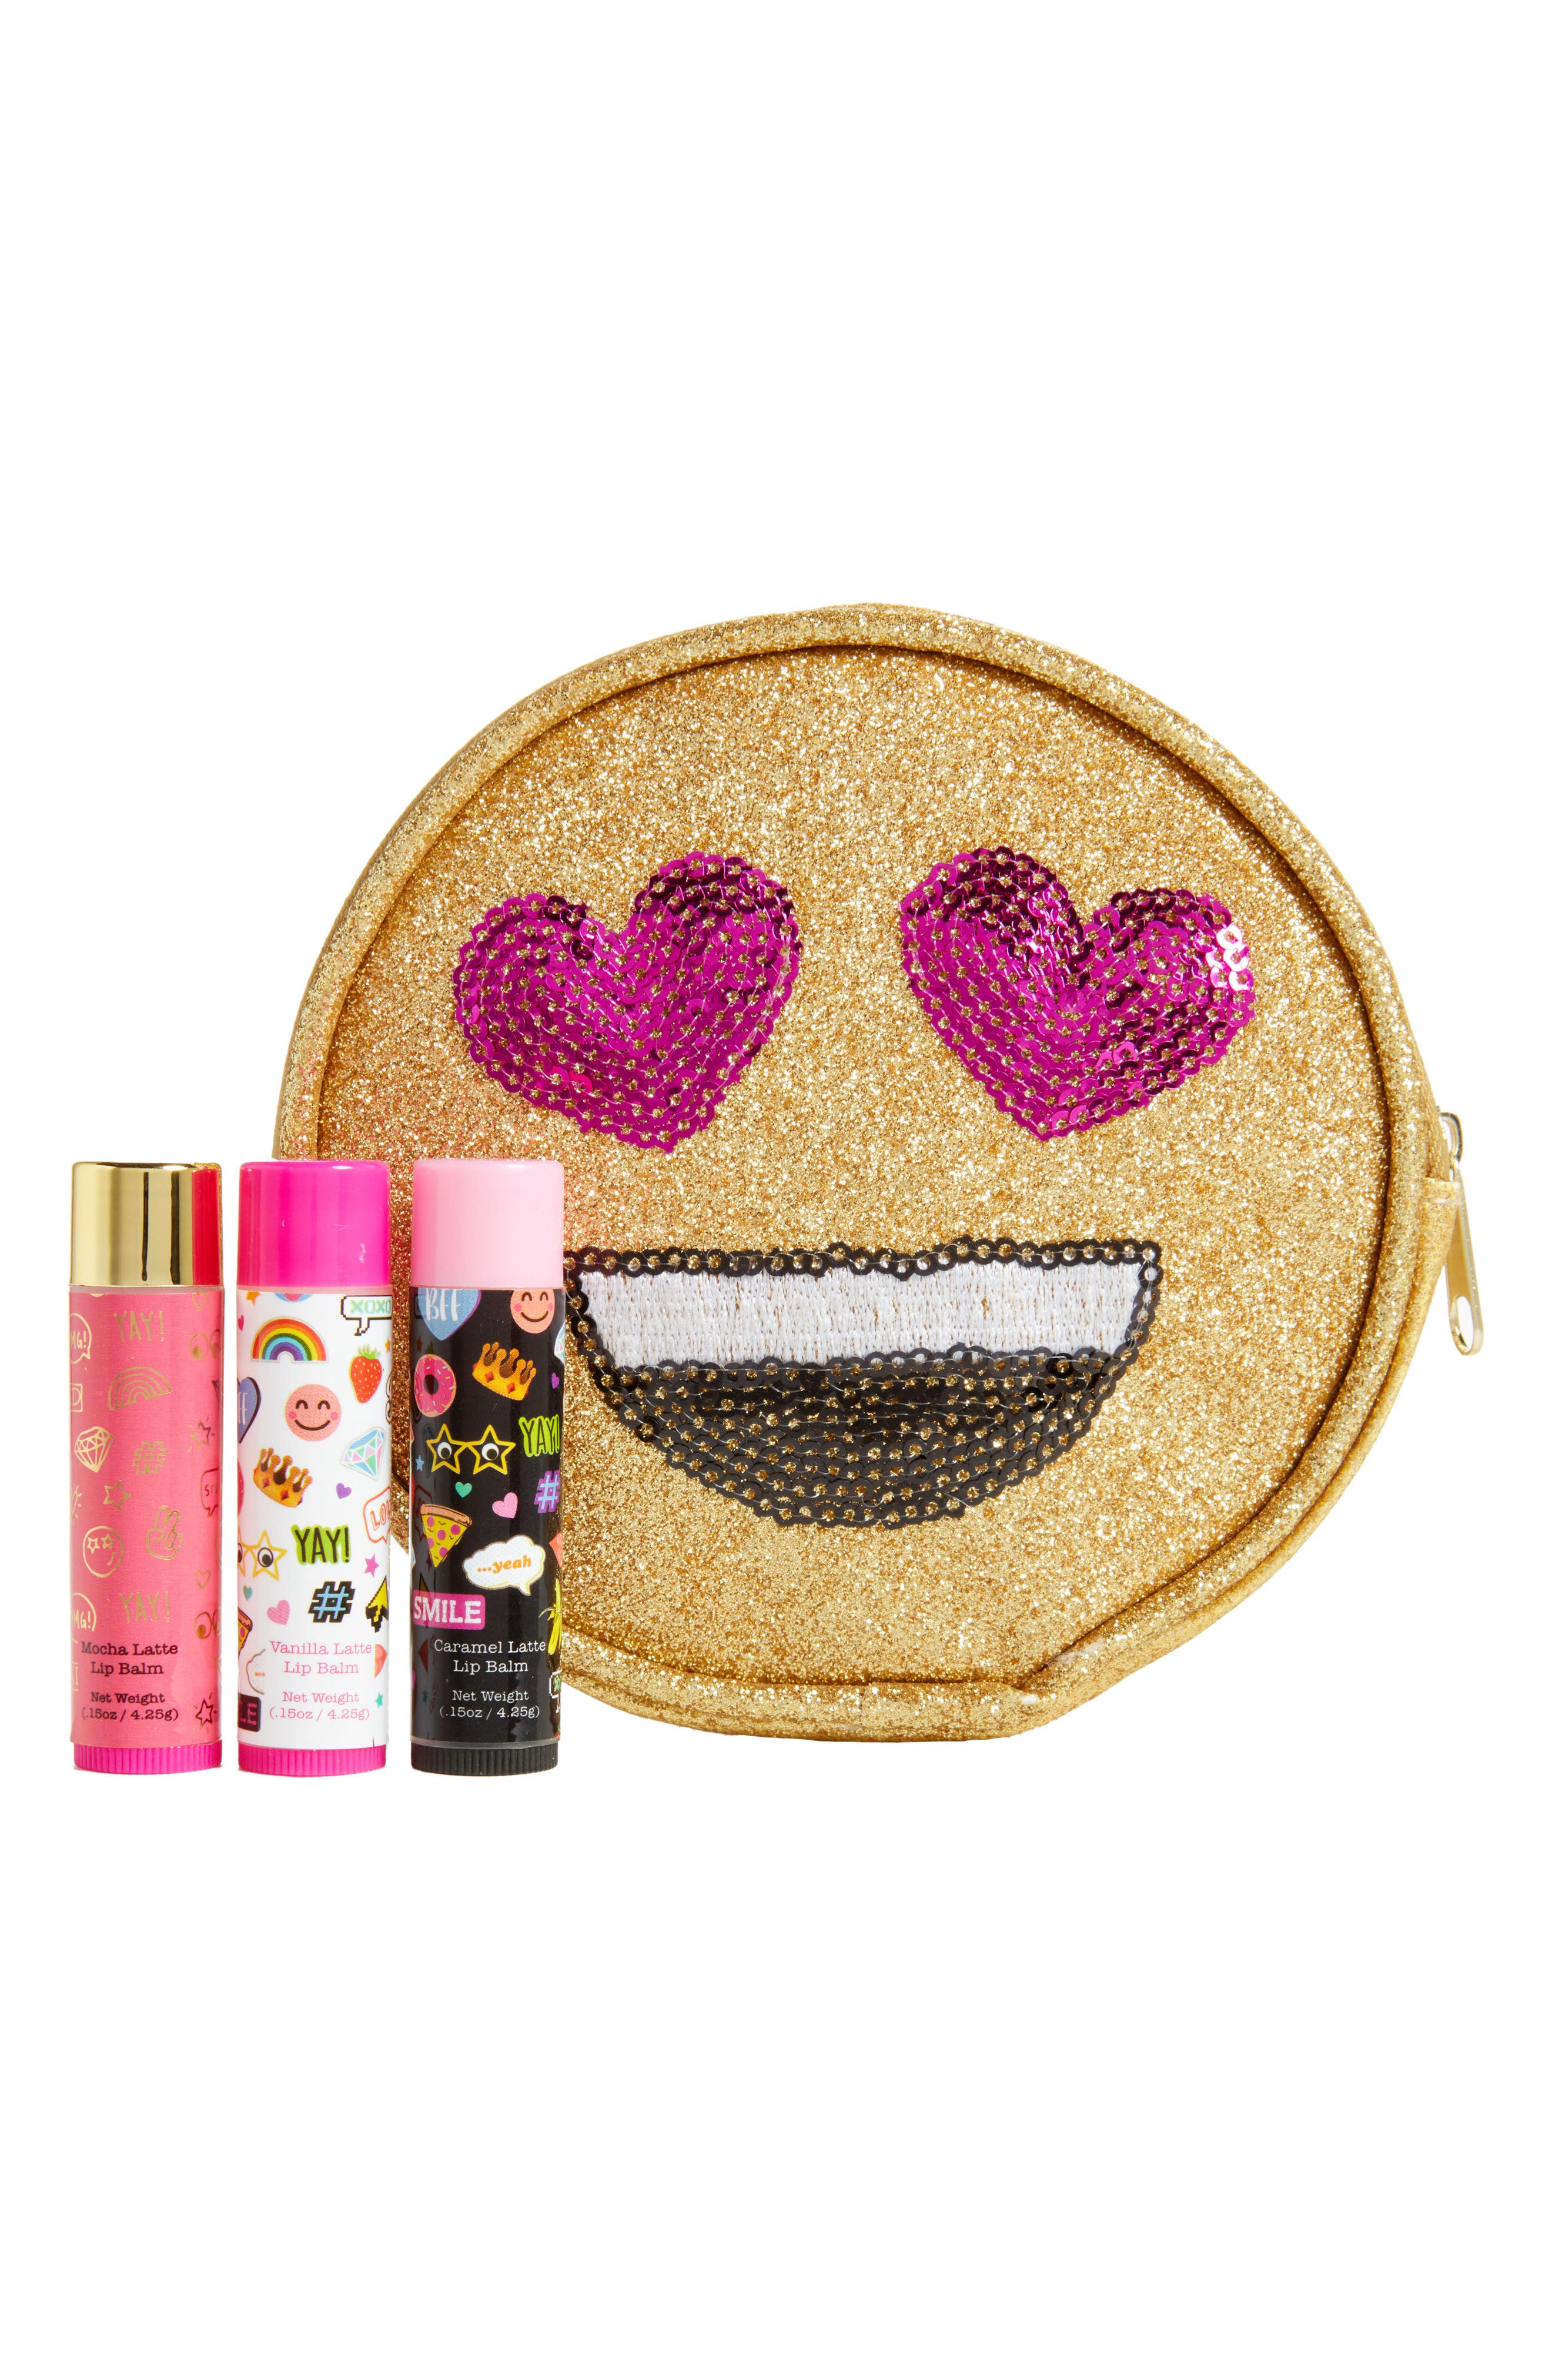 Capelli of New York 4-Piece Emoji Lip Balm & Pouch Set,                             Main thumbnail 1, color,                             Yellow